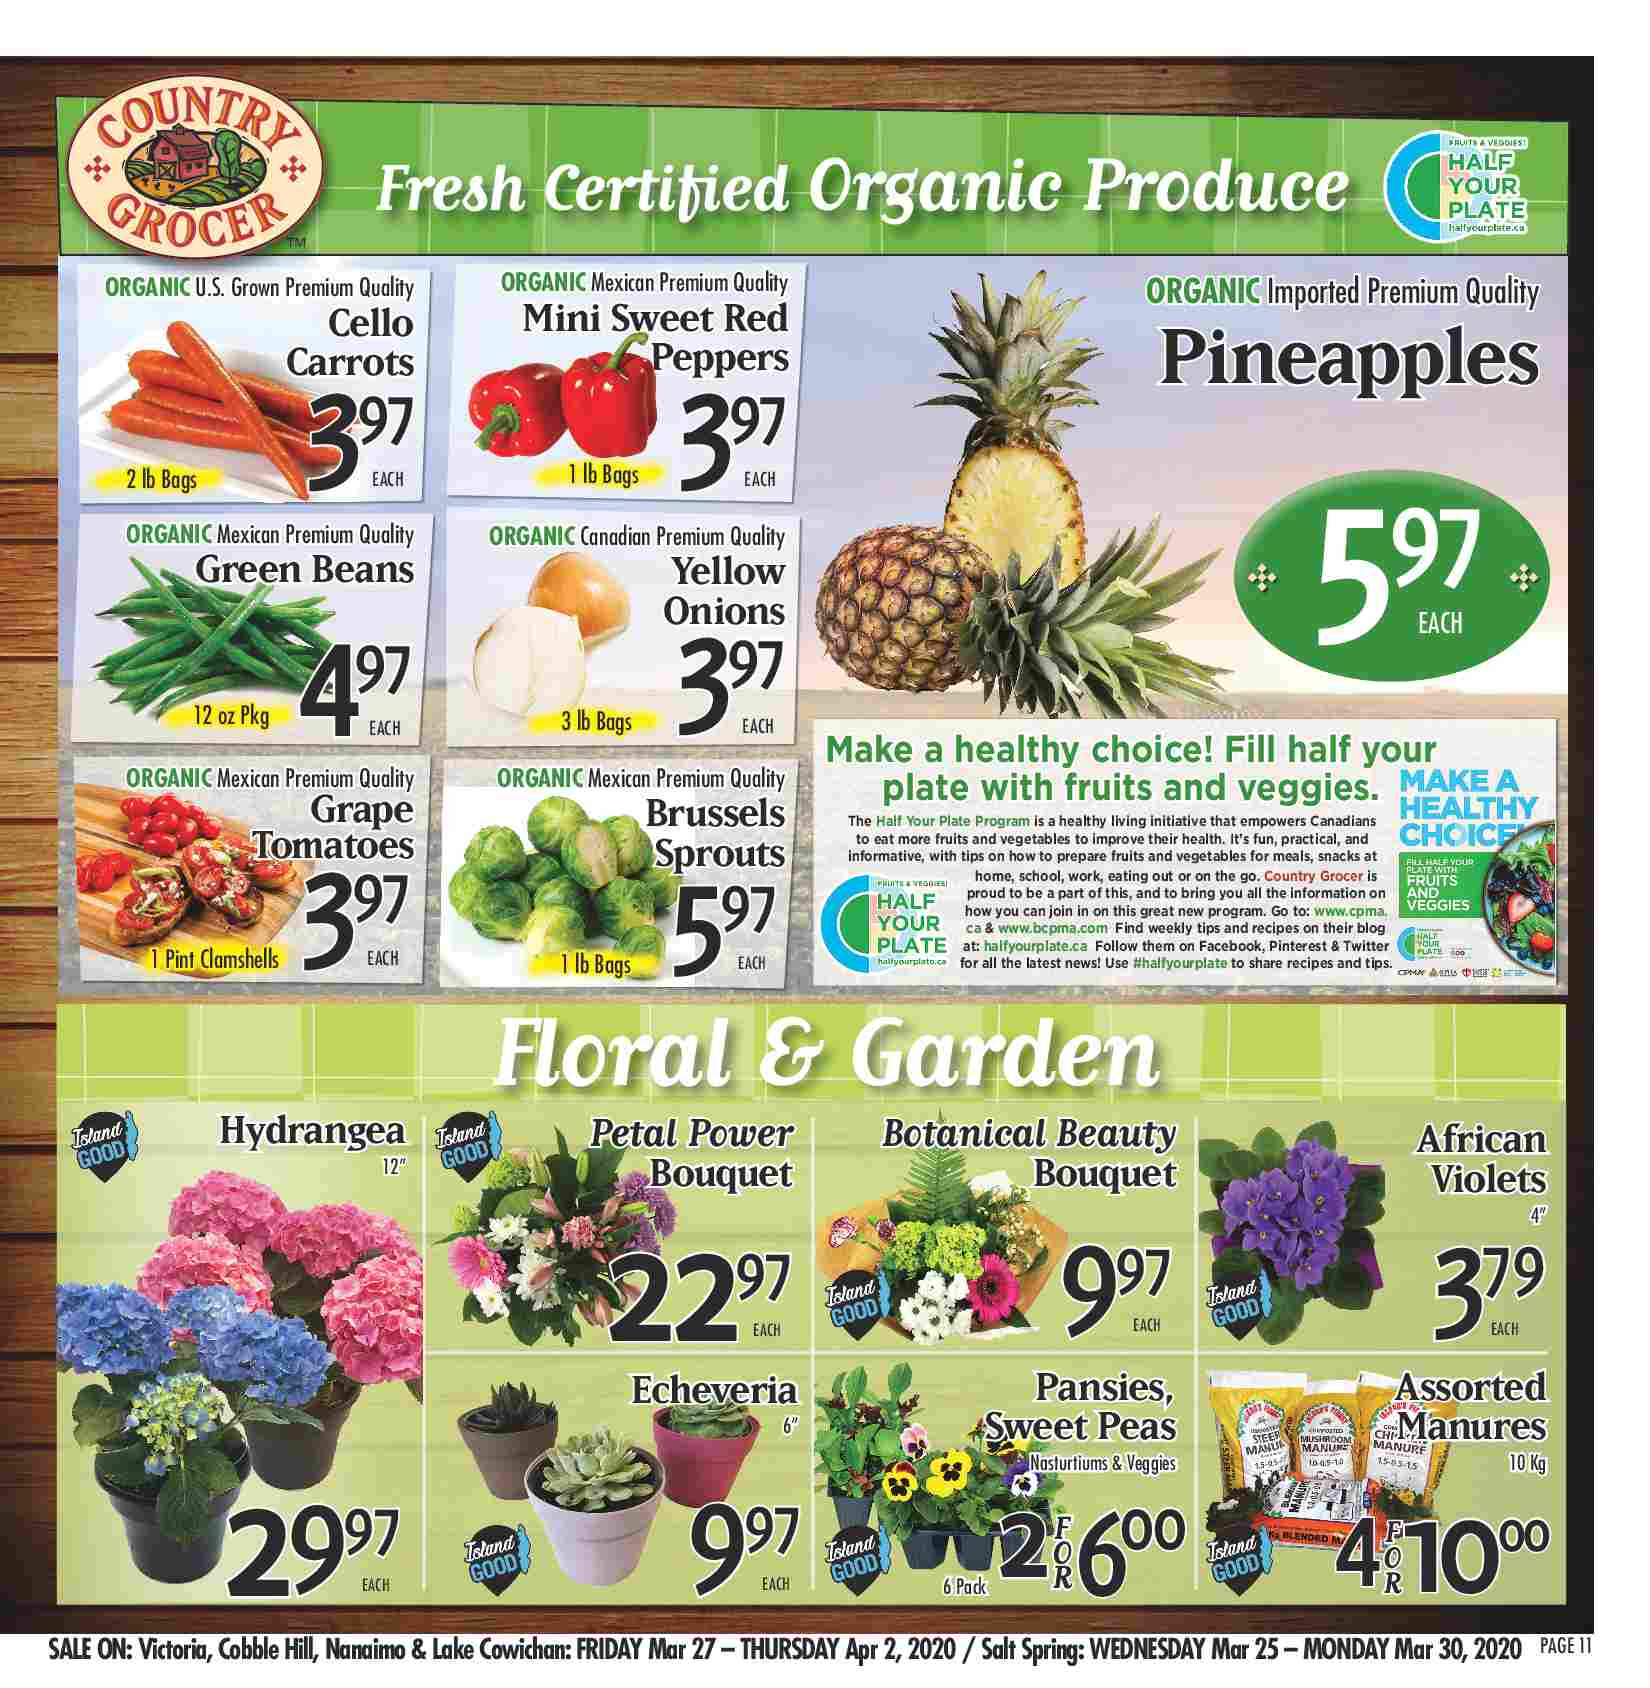 Fresh Certified Organic Produce